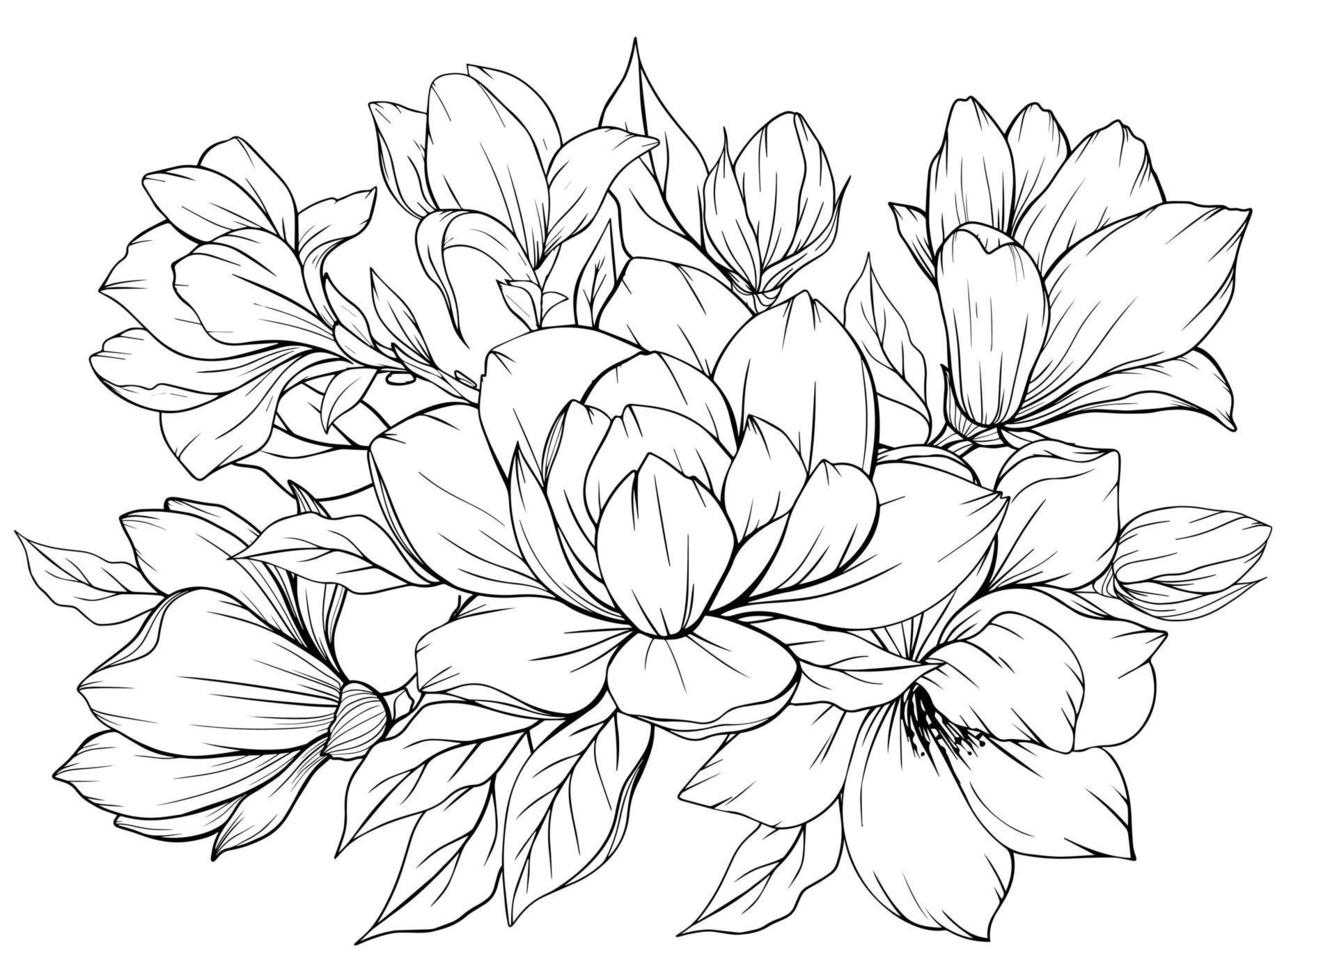 Coloring page with magnolia and leaves. Vector page for coloring. Flower Colouring page. Outline magnolia . Black and white page for coloring book. Anti-stress coloring. Line art flowers